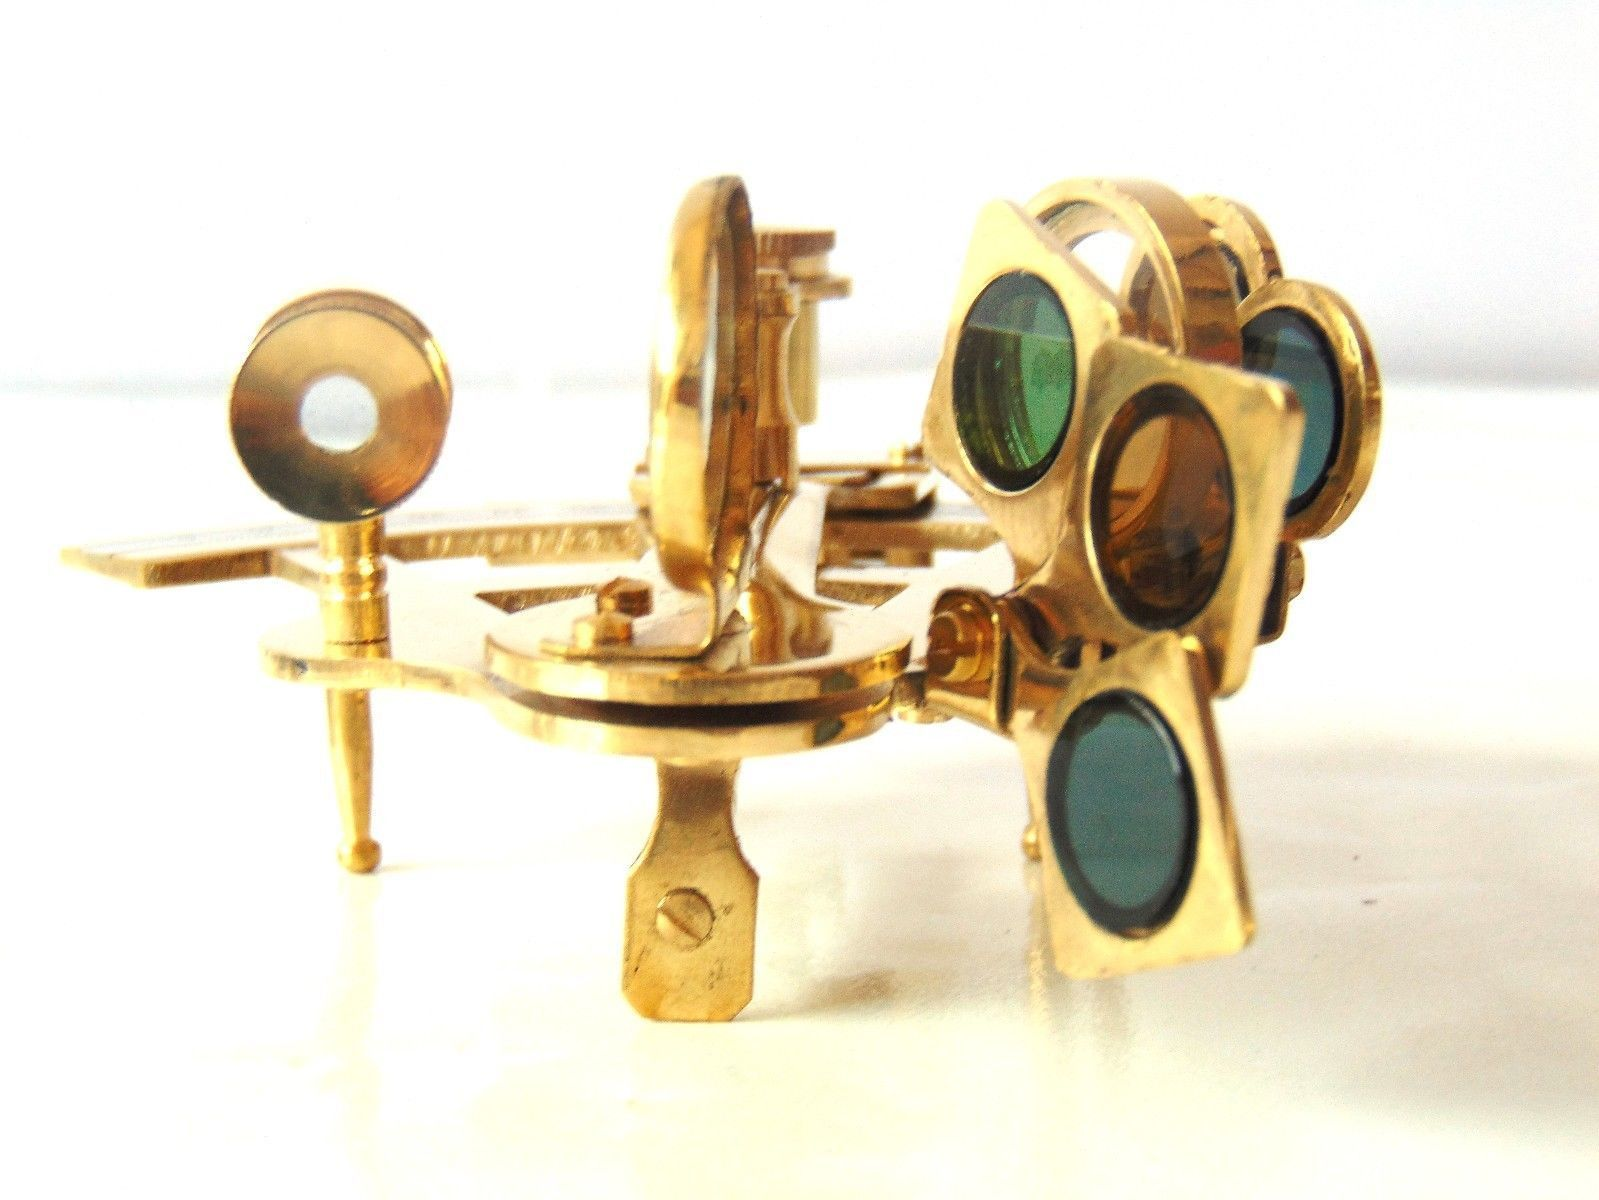 Solid Brass Working Sextant Vintage Desk Astrolabe Sextant Maritime Collectible